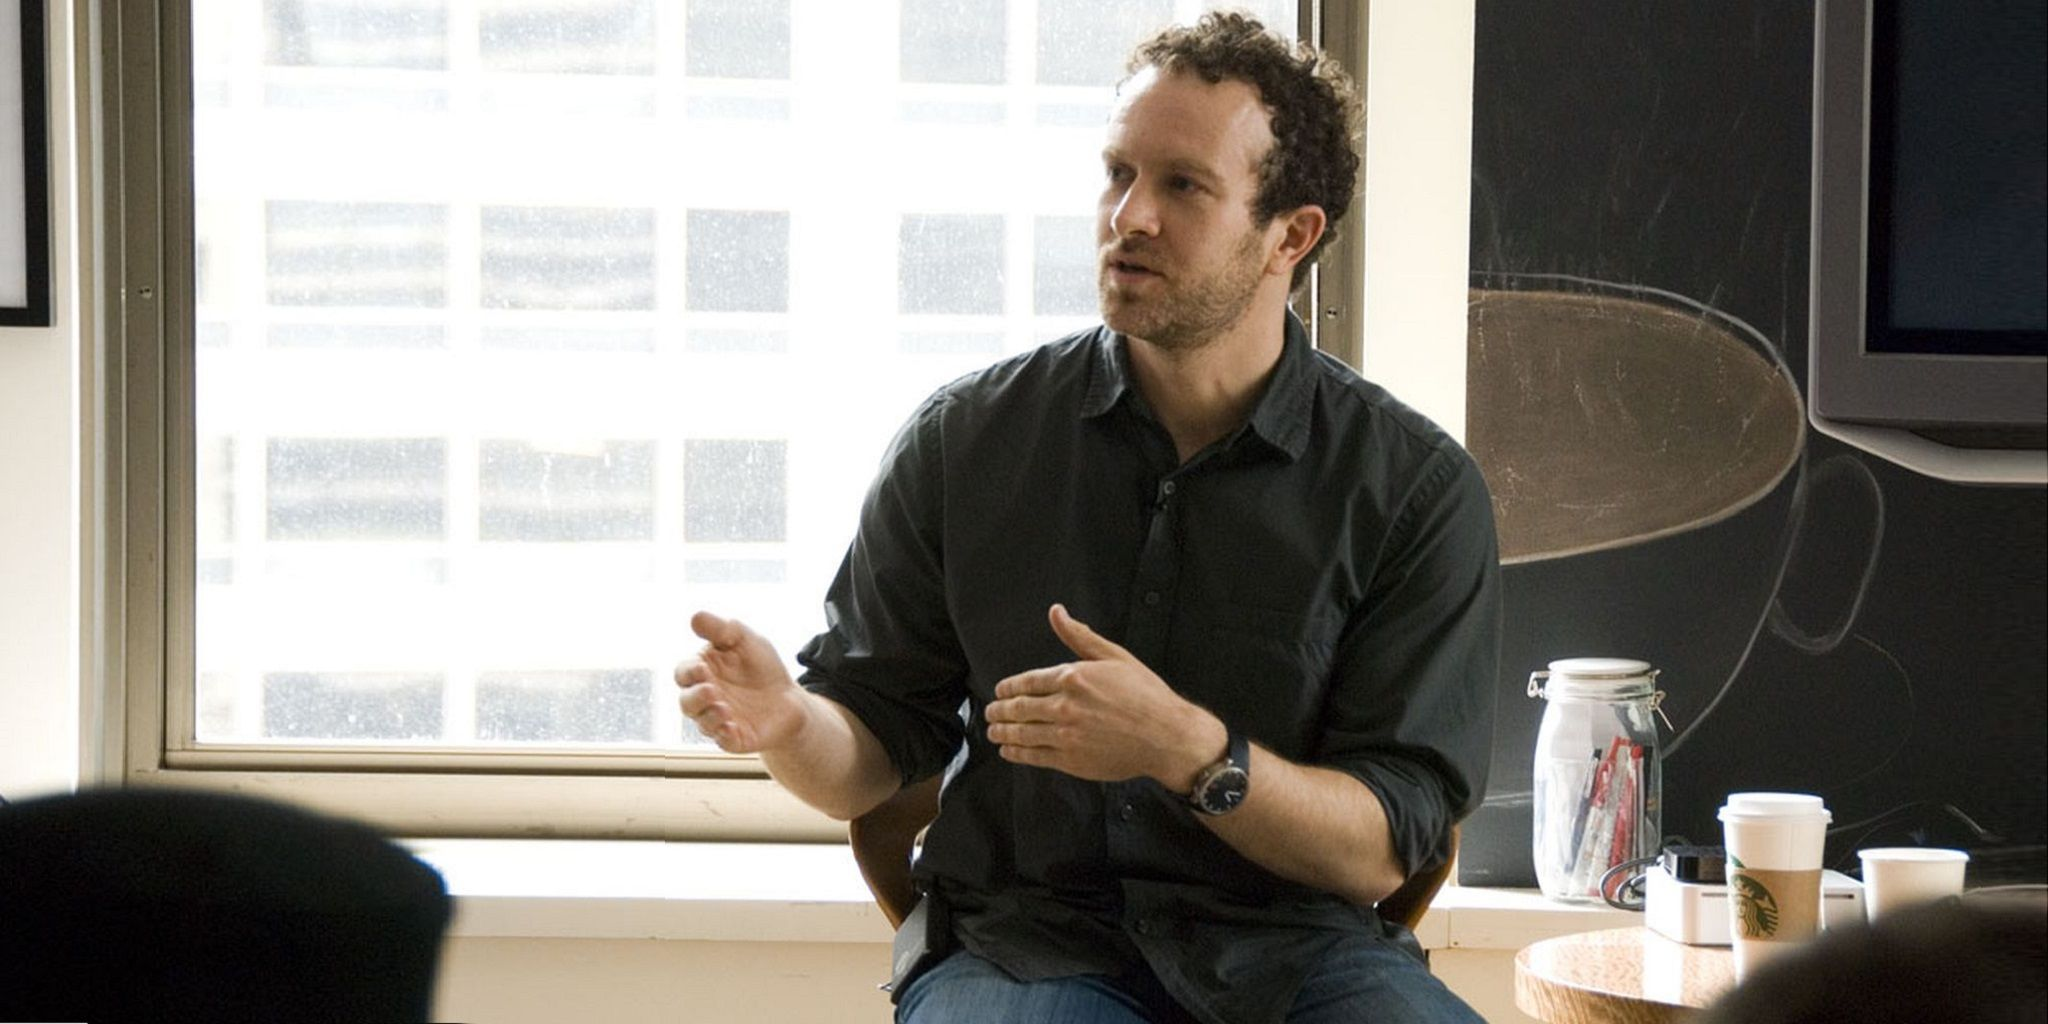 interview jason fried the founder and ceo of signals jason sitting on a desk